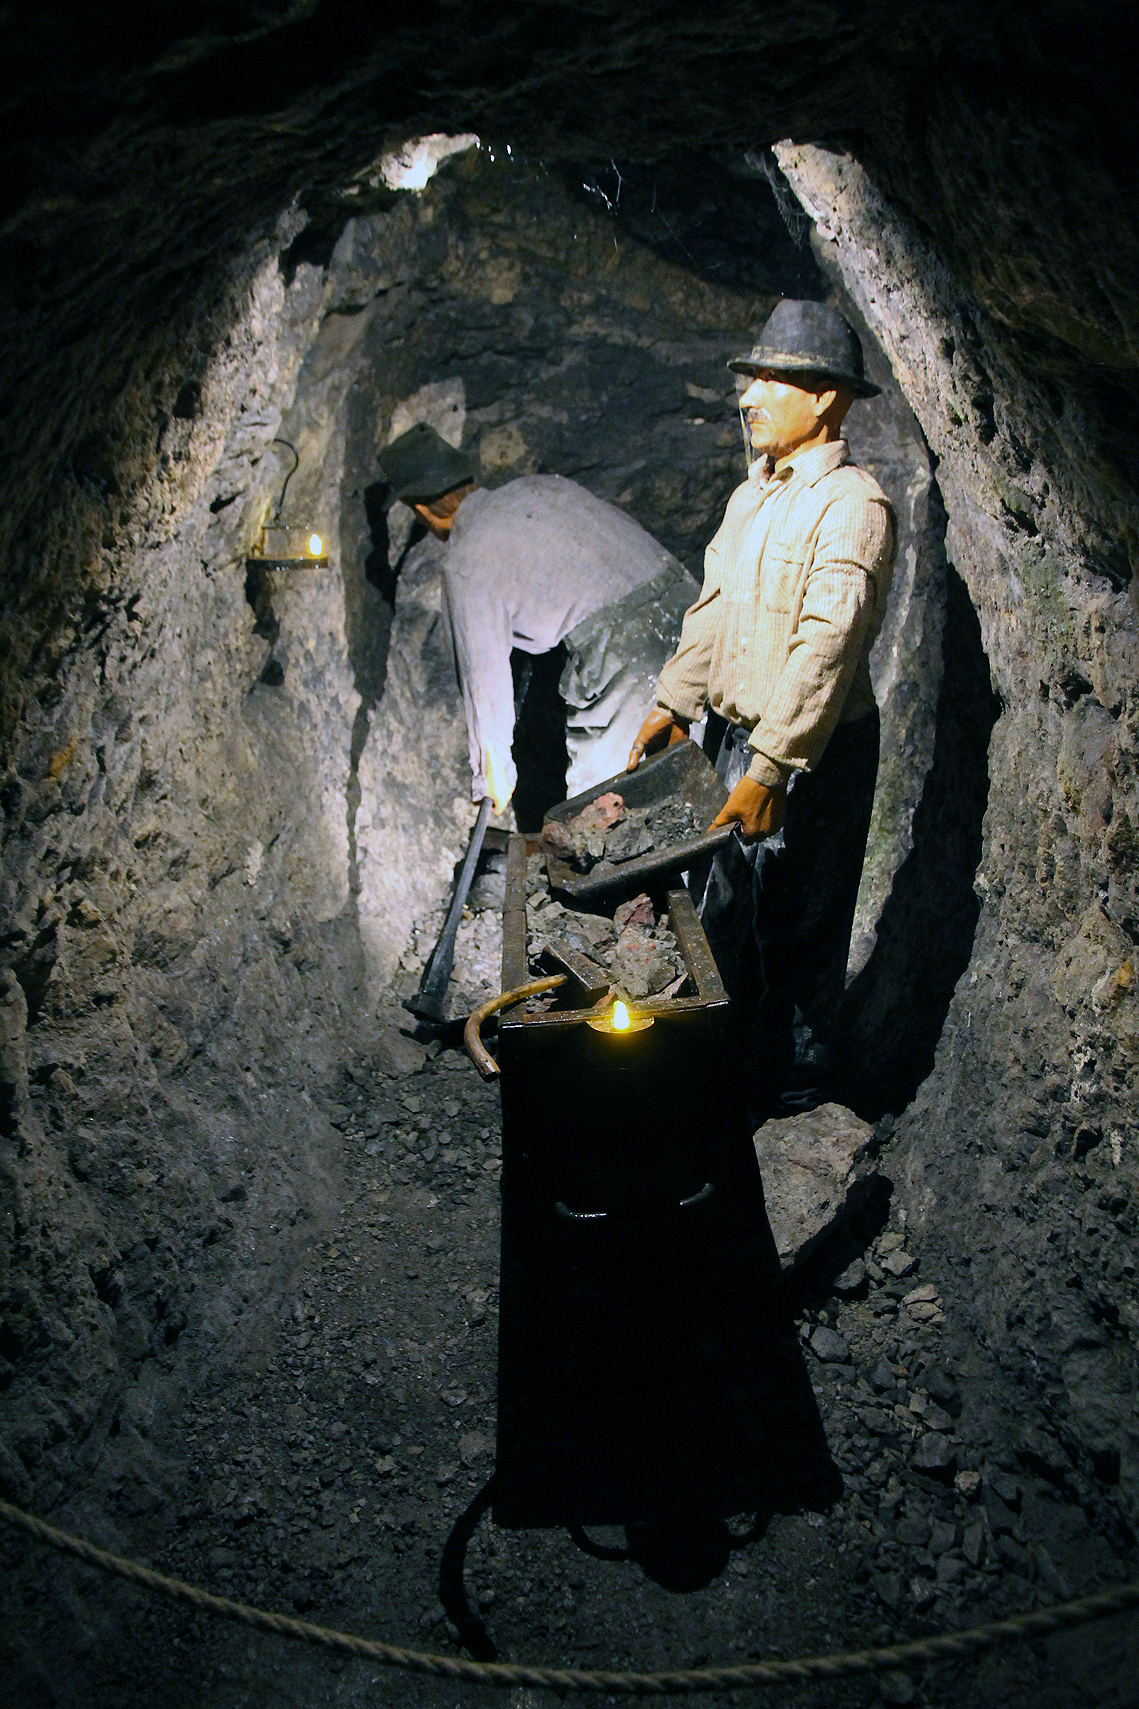 Slightly spooky presentation of miners.